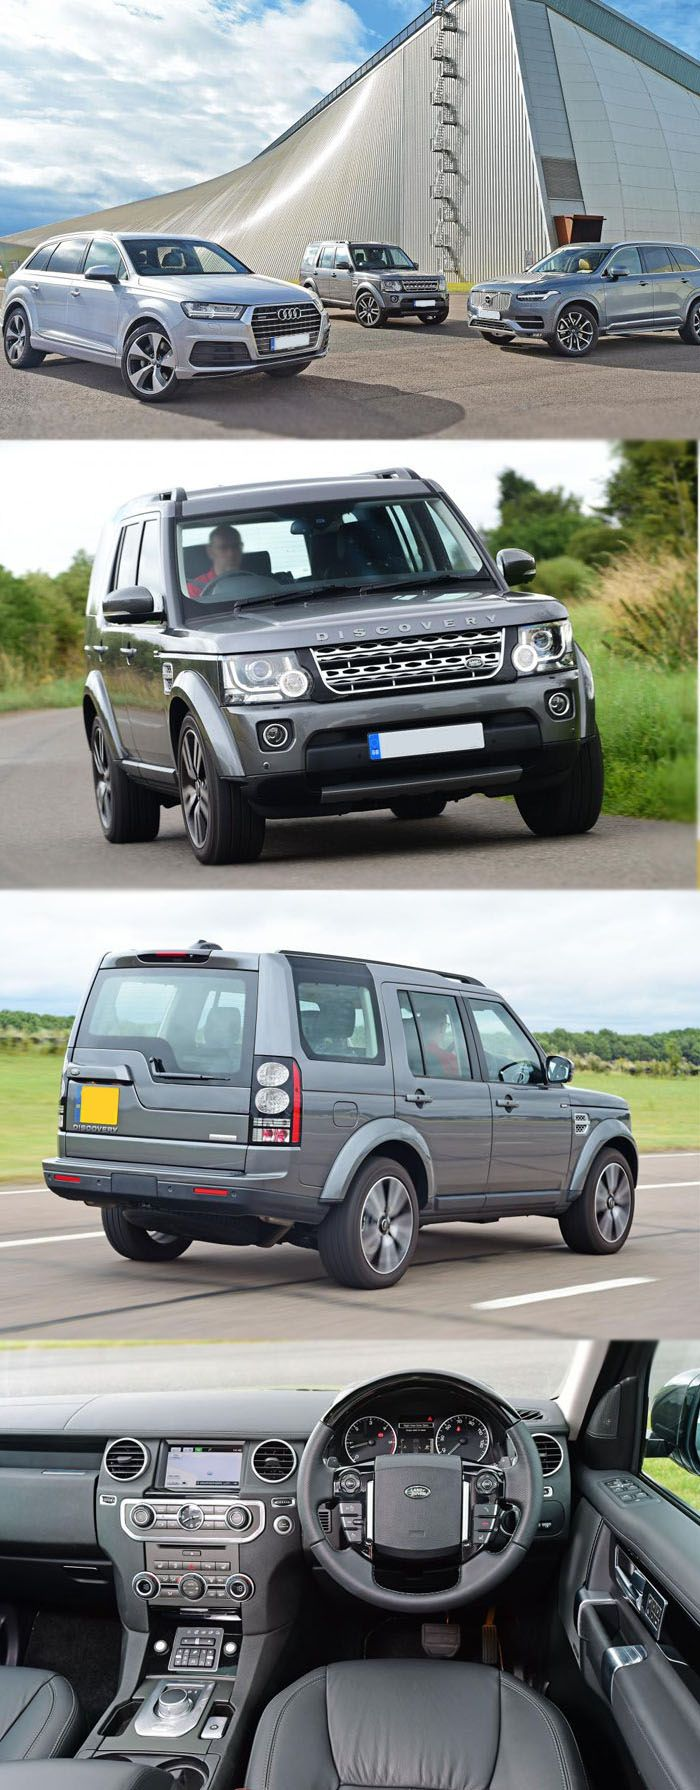 New land rover discovery to beat volvo xc90 and audi q7 for more detail https